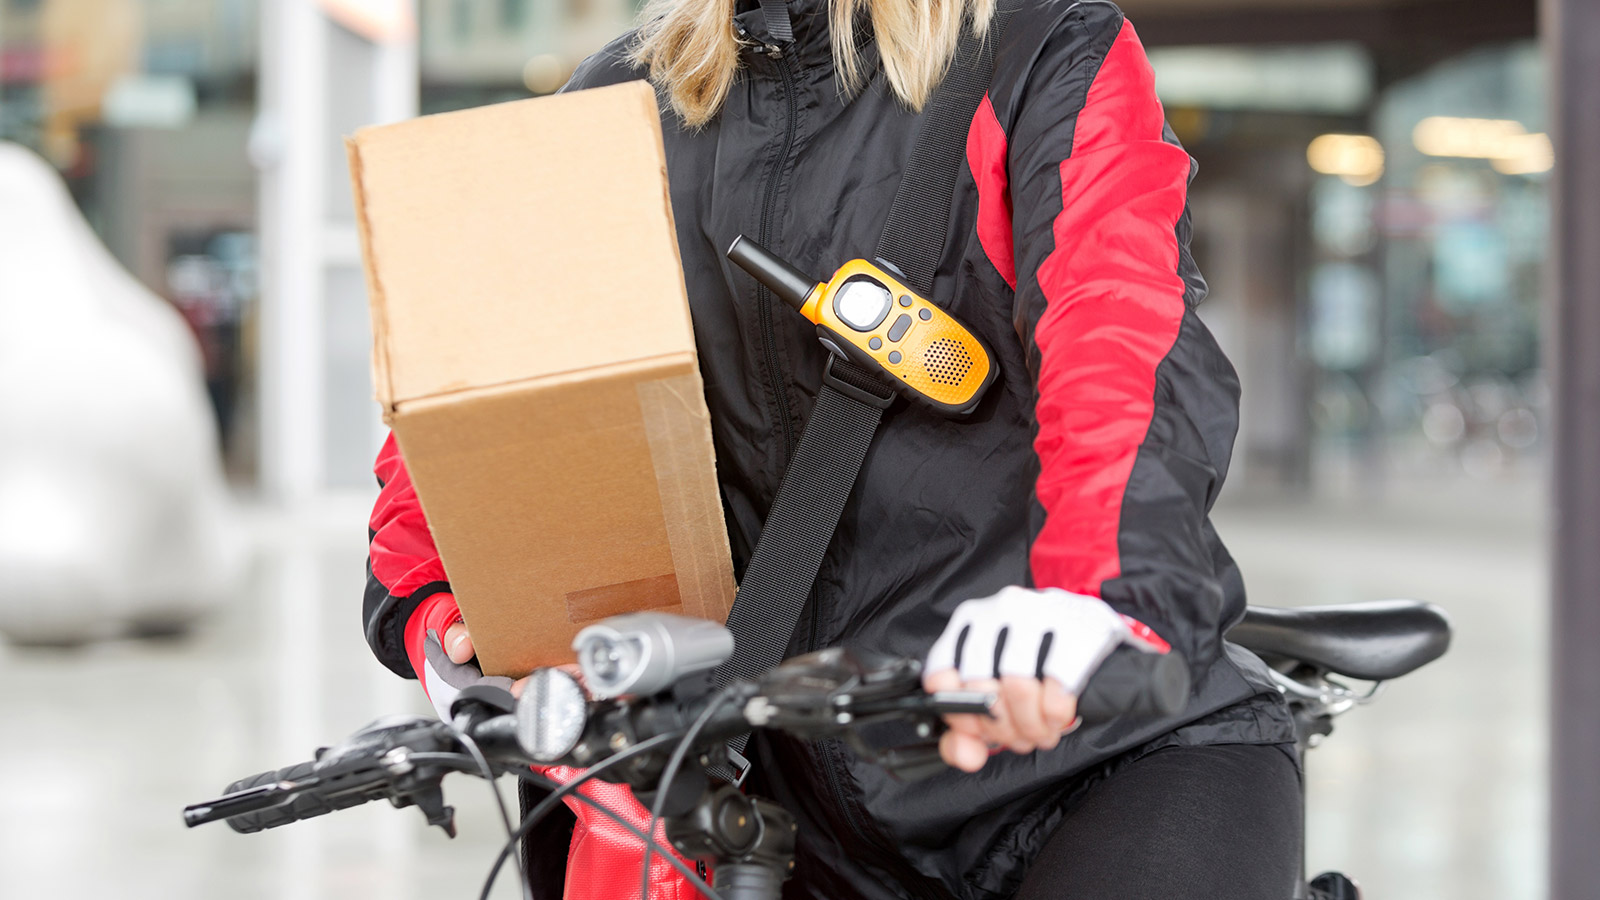 Amazon delivery by bicycle